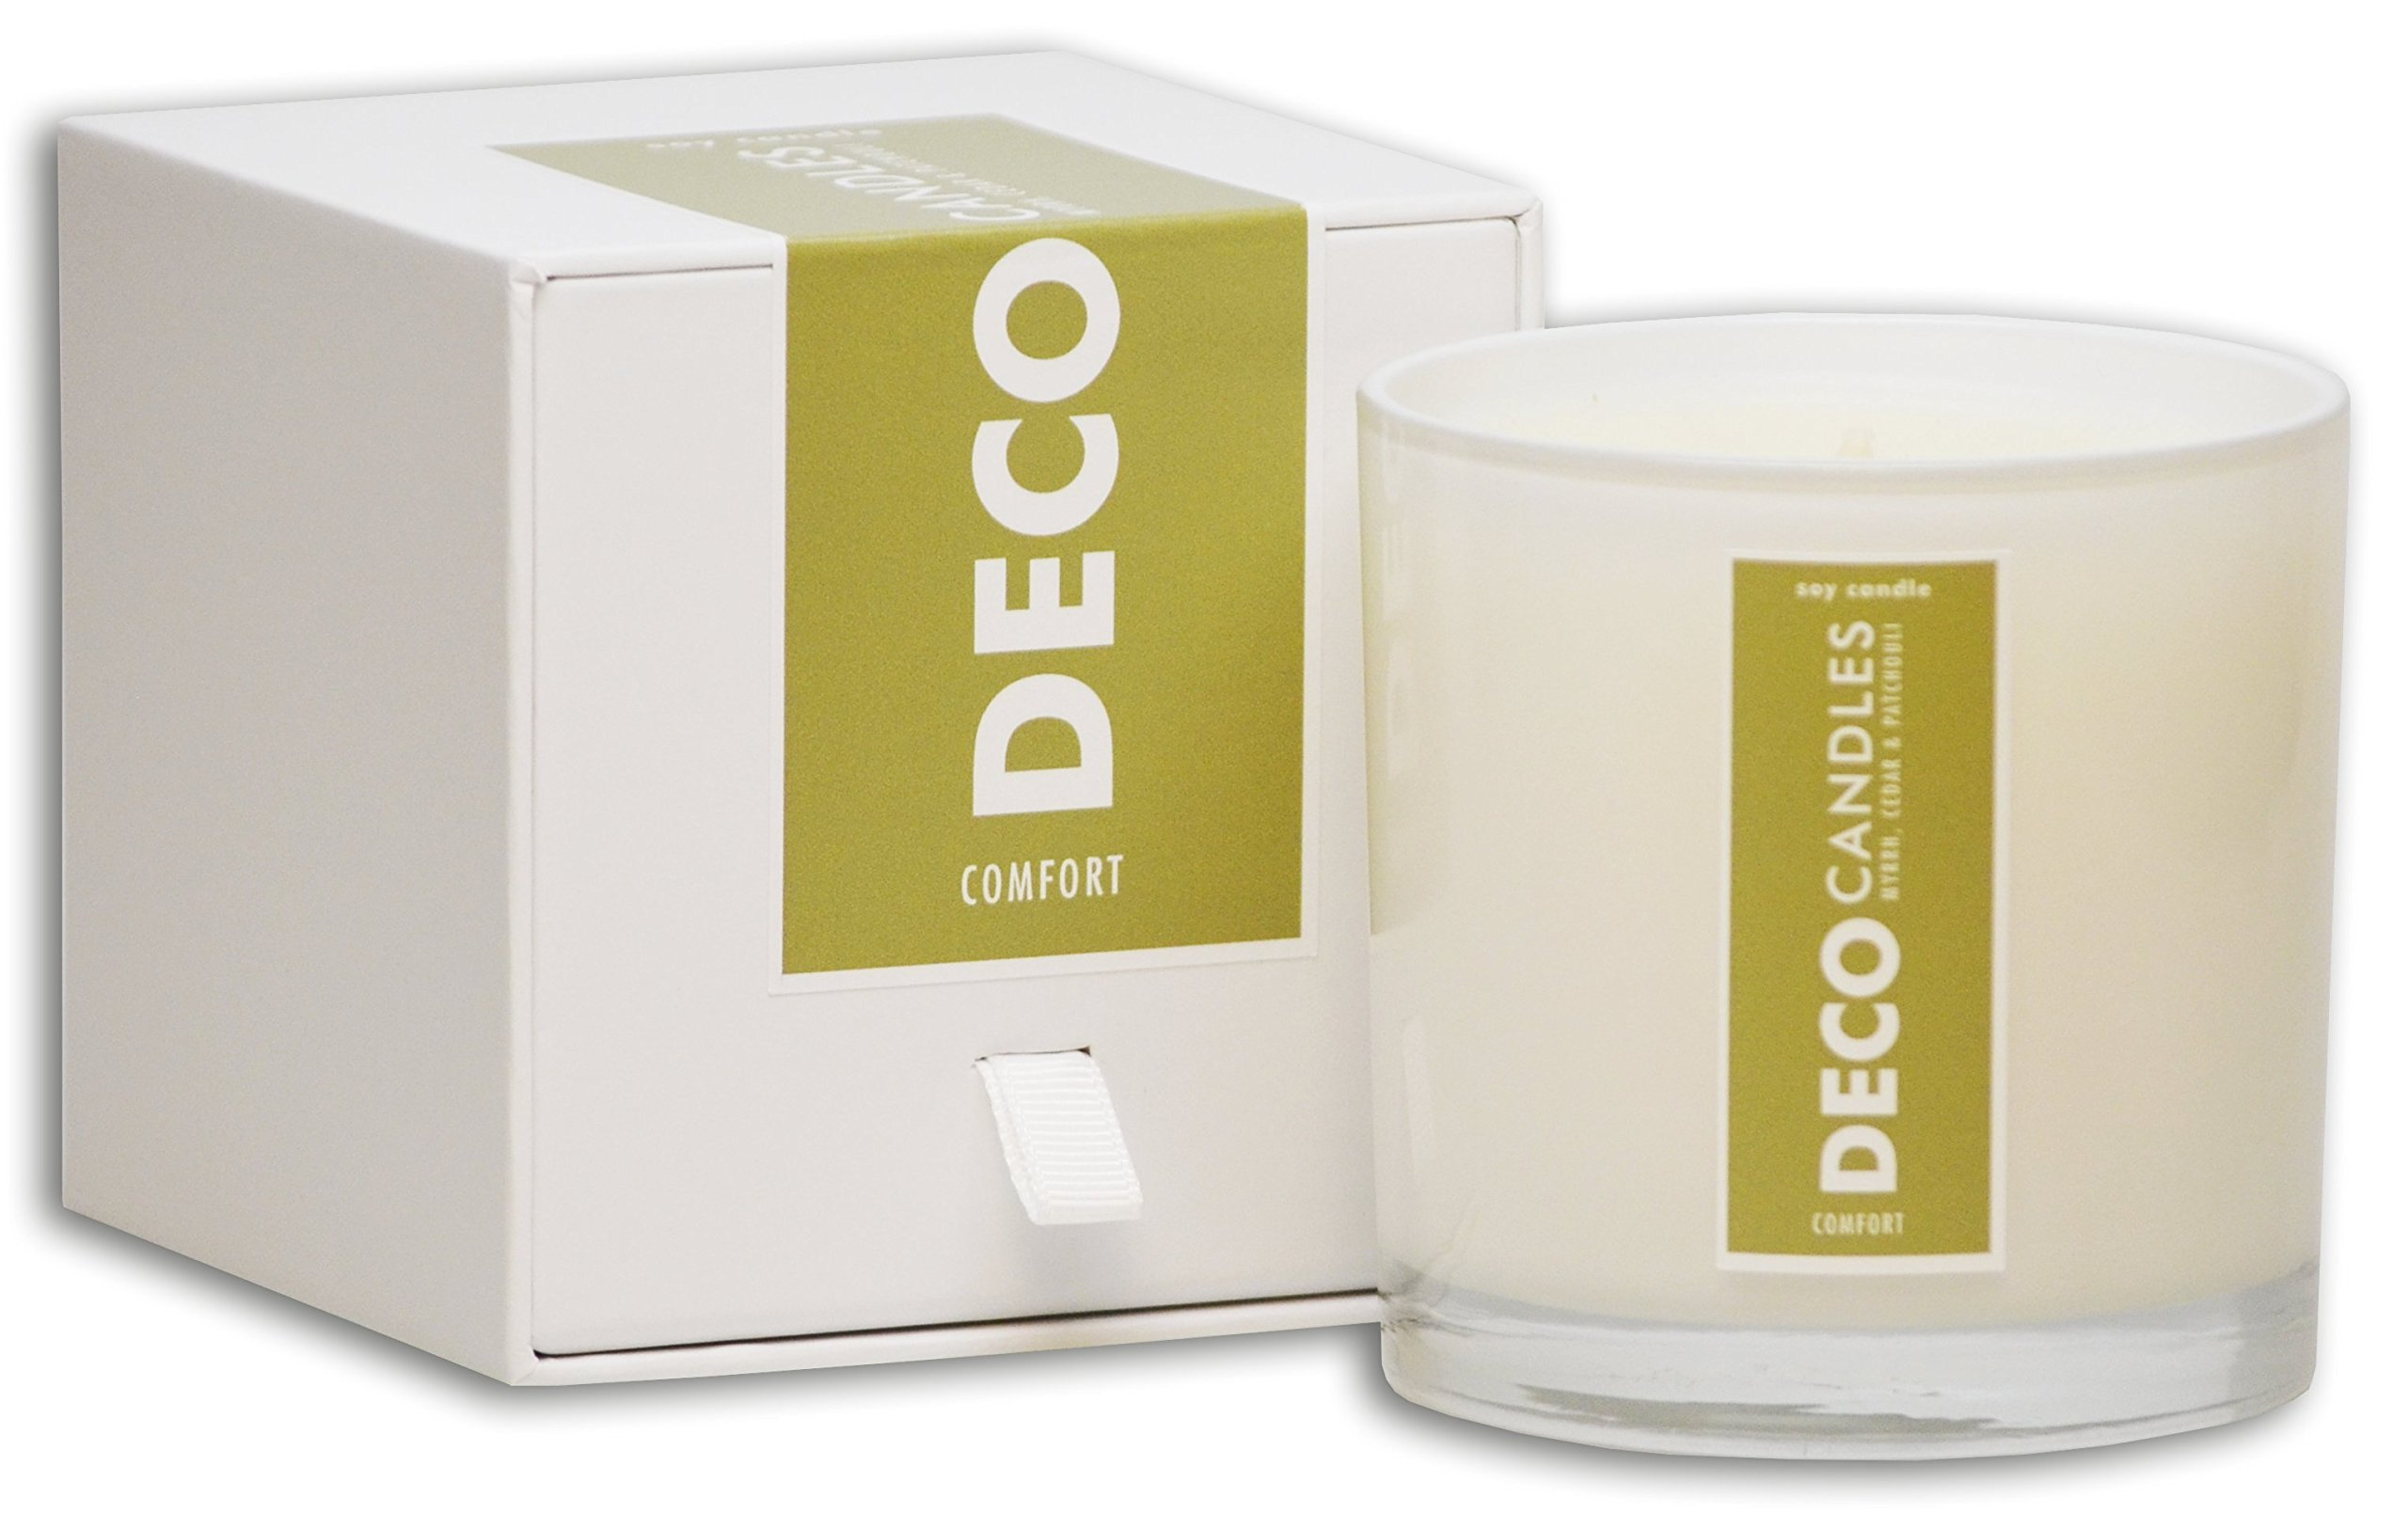 DecoCandleS | Comfort - Honeyed Myrrh & Patchouli - Highly Scented Candle - Long Lasting - Hand poured in the USA - Hotel Inspired Collection - 9 Oz.